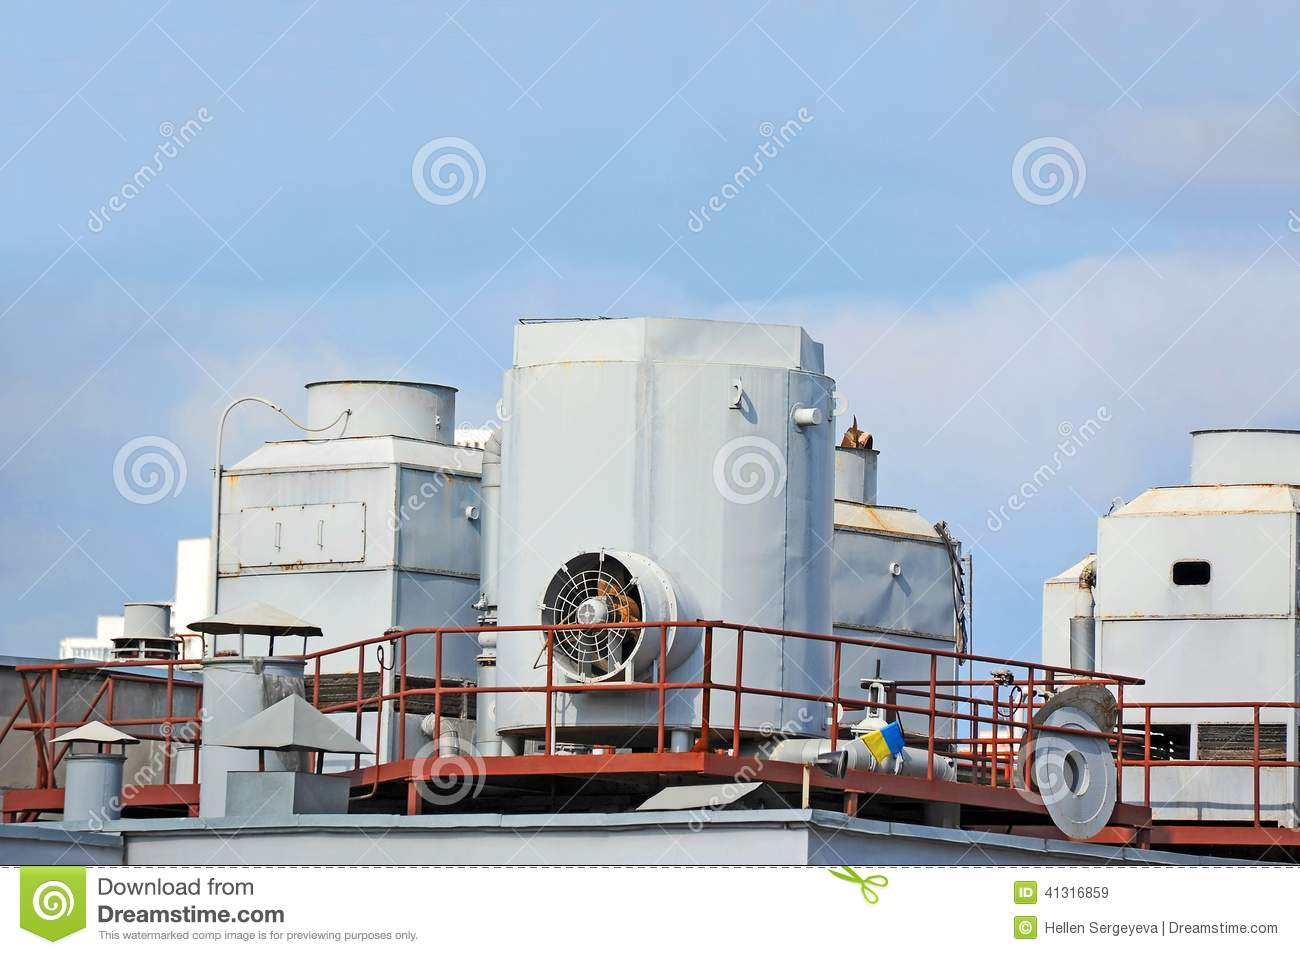 Industrial air conditioning and ventilation systems on a roof. #326699